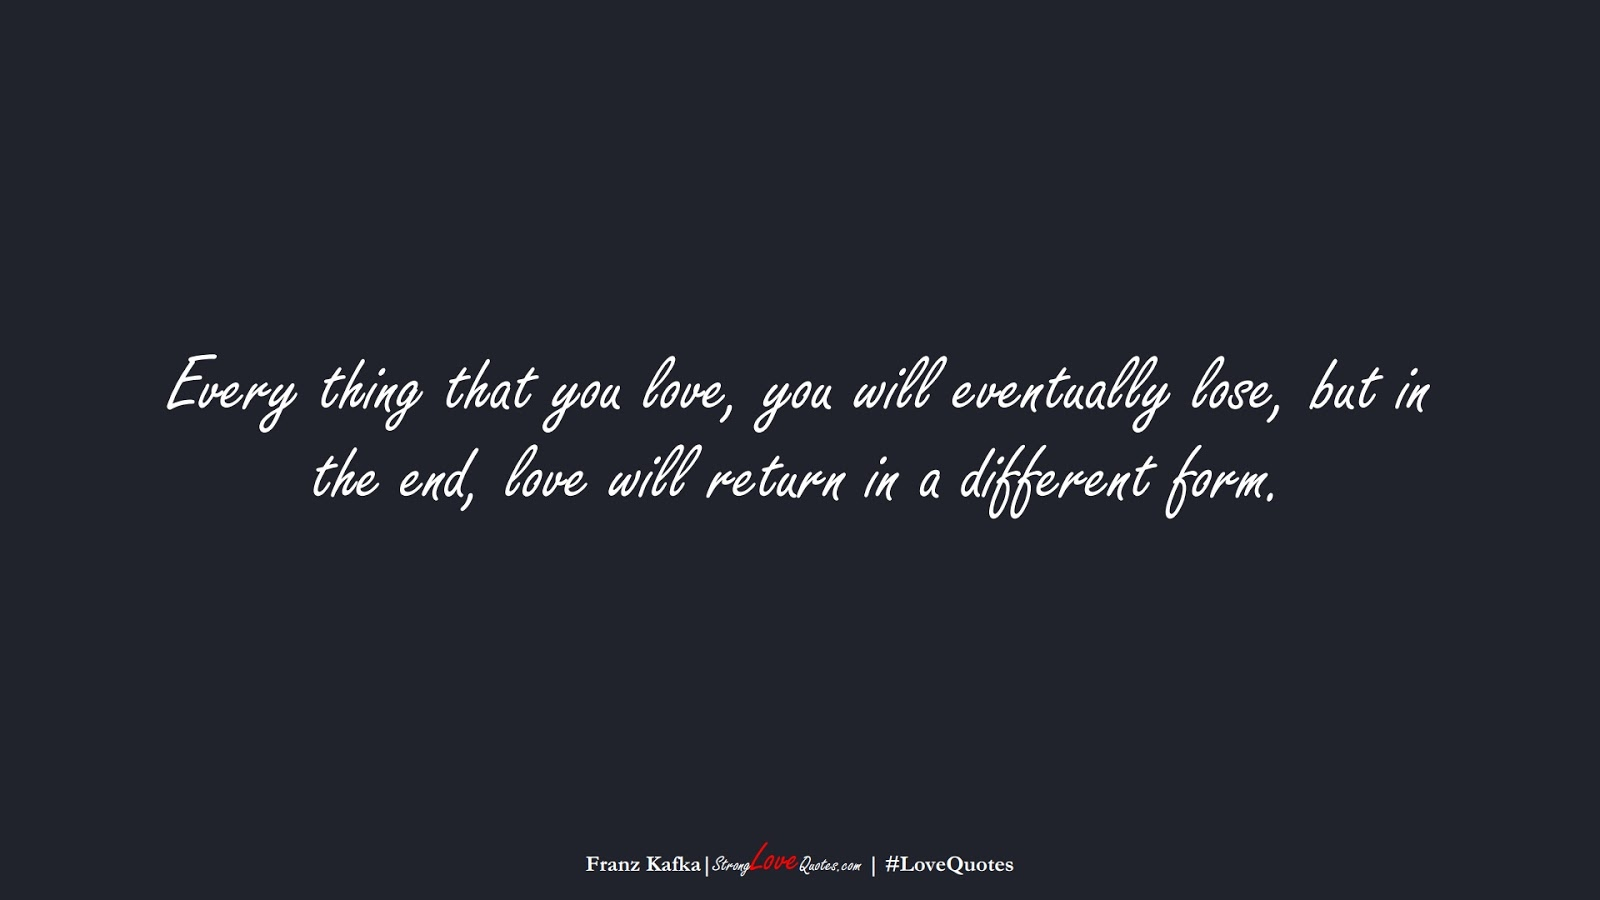 Every thing that you love, you will eventually lose, but in the end, love will return in a different form. (Franz Kafka);  #LoveQuotes